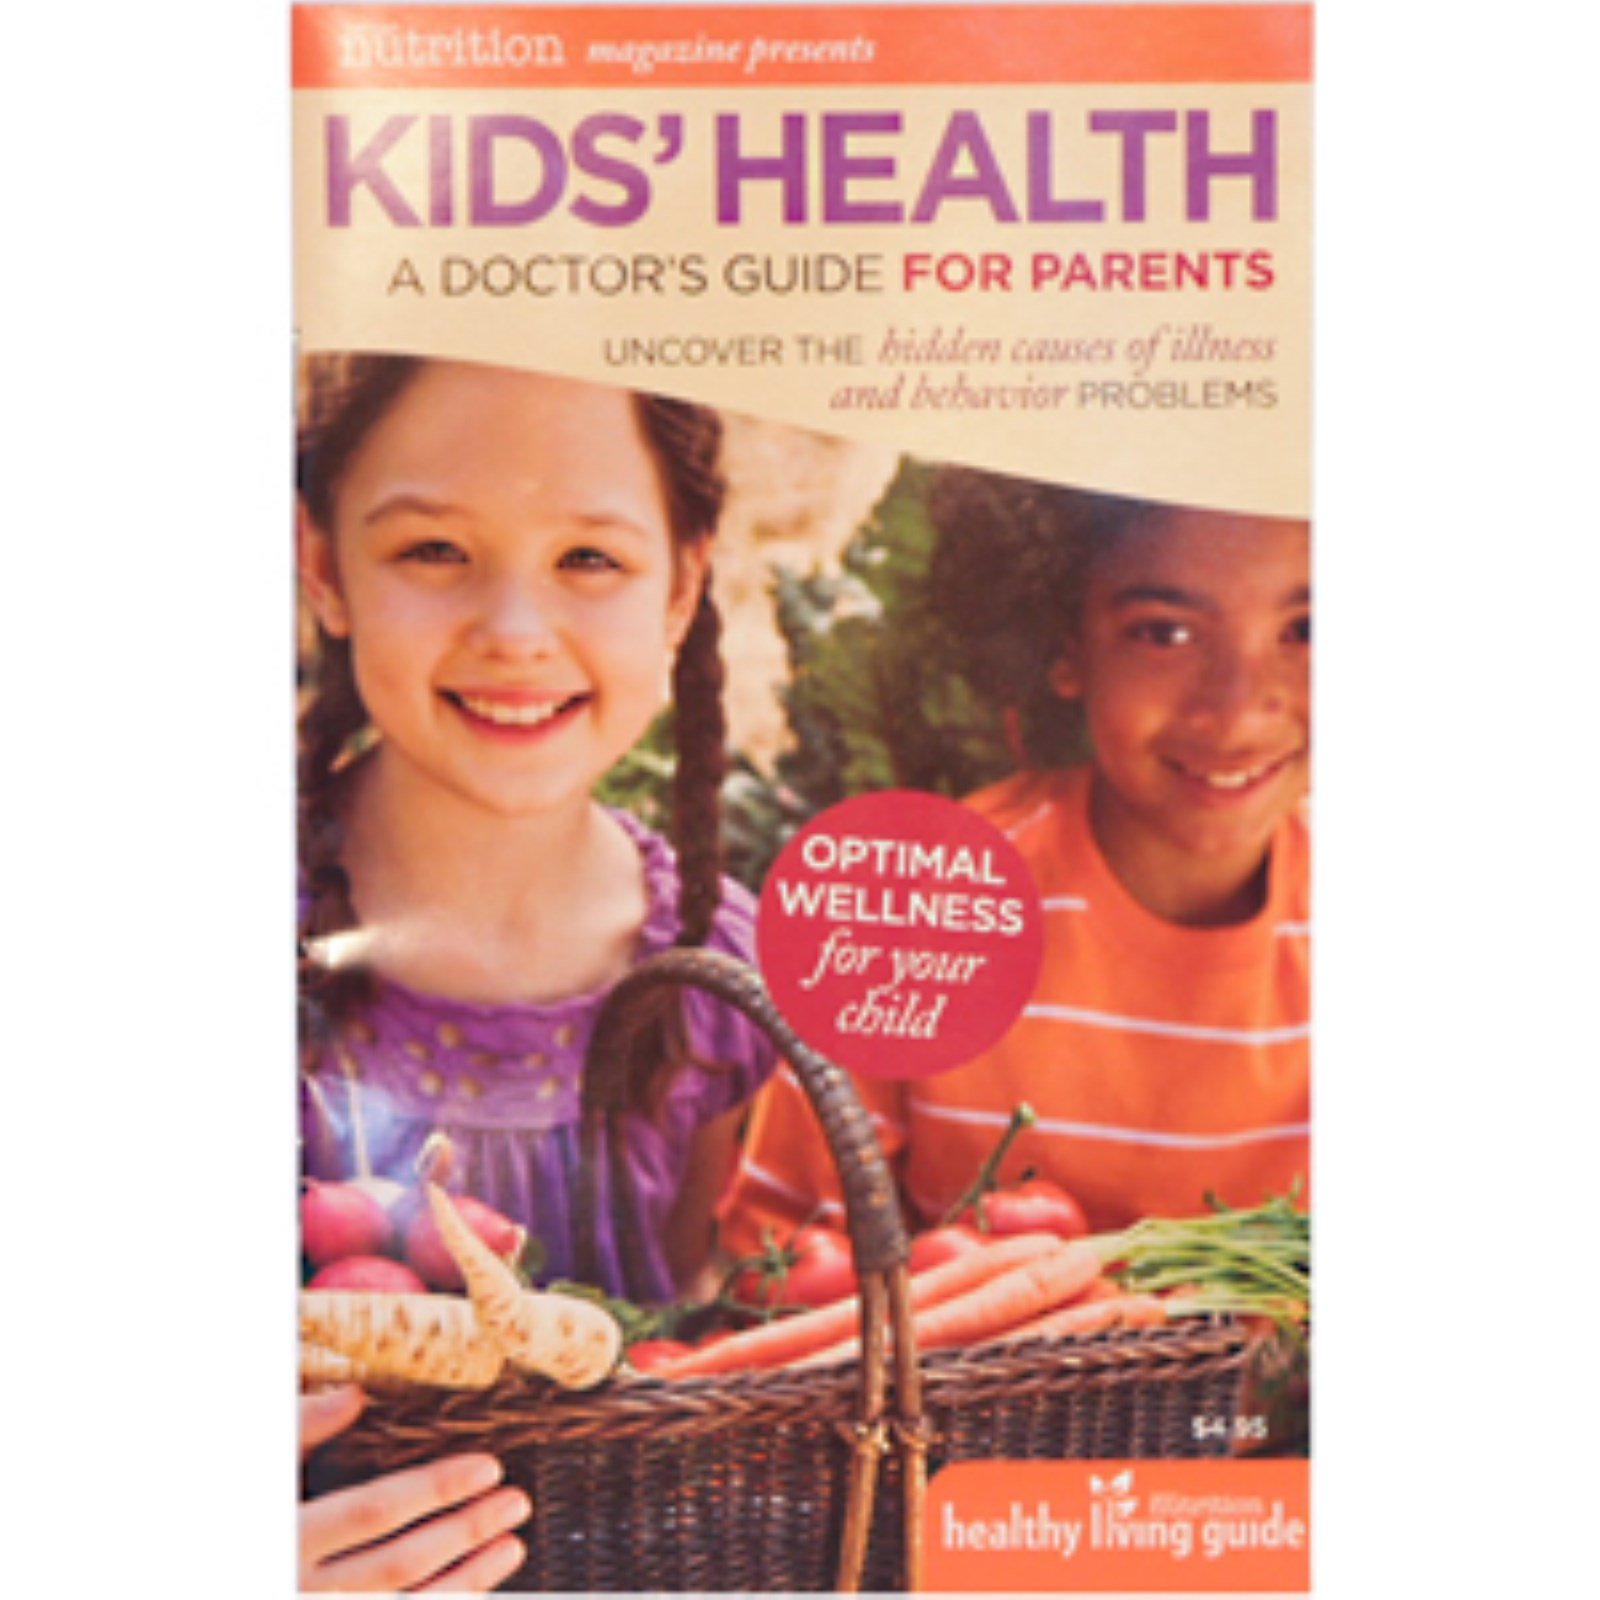 special kids health a doctor s guide for parents 32 page rh iherb com Theatre Guide Magazine Gun Guide Magazine